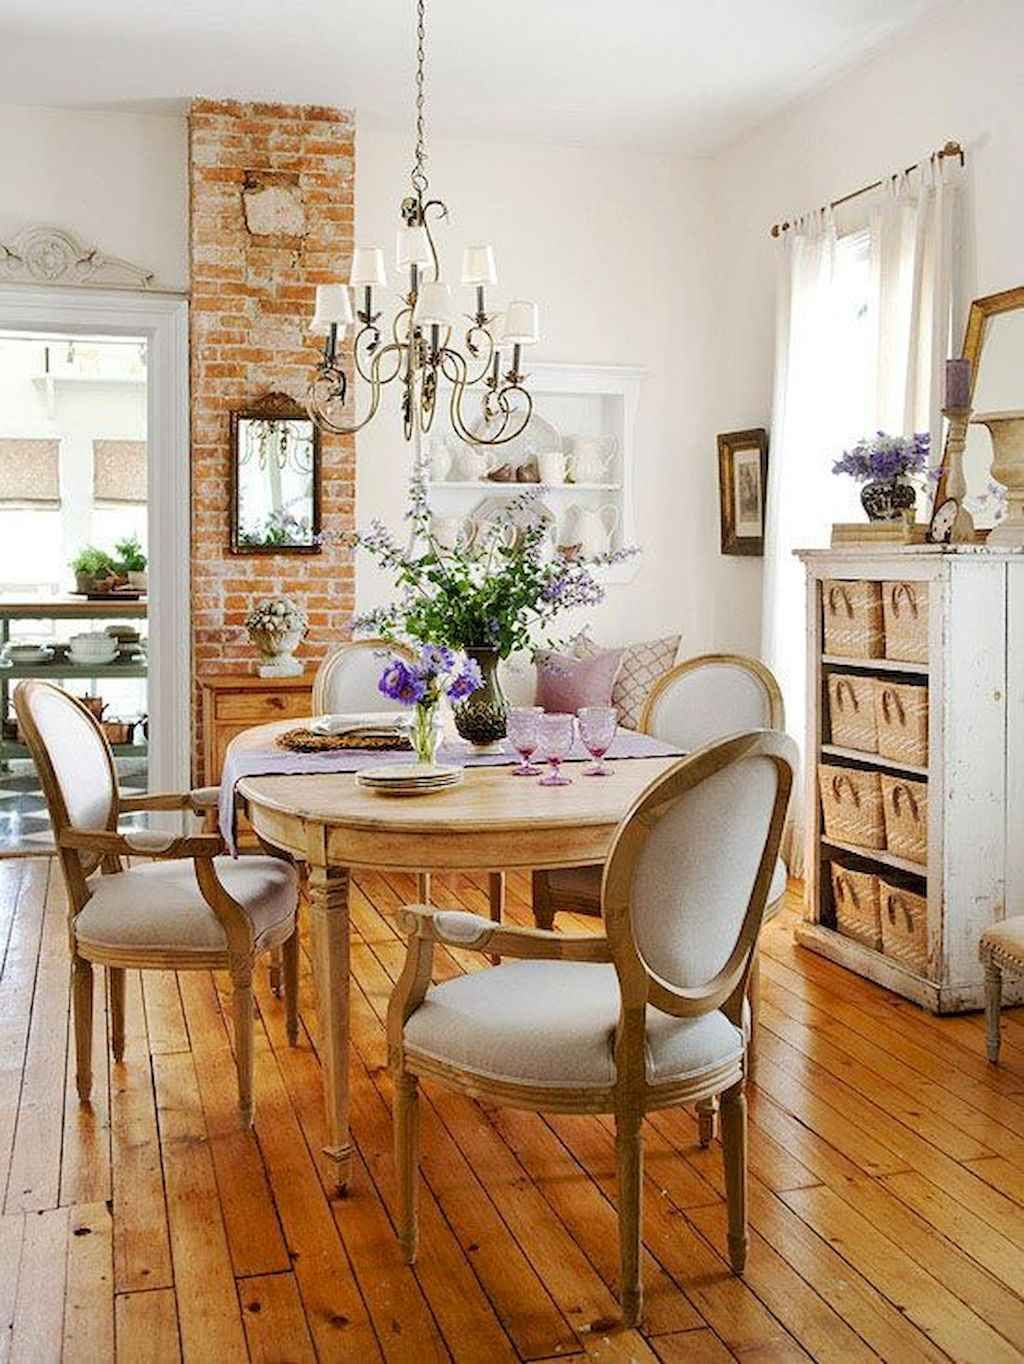 Photo of 55 French Country Dining Room Decor Ideas – DoMakeover.com